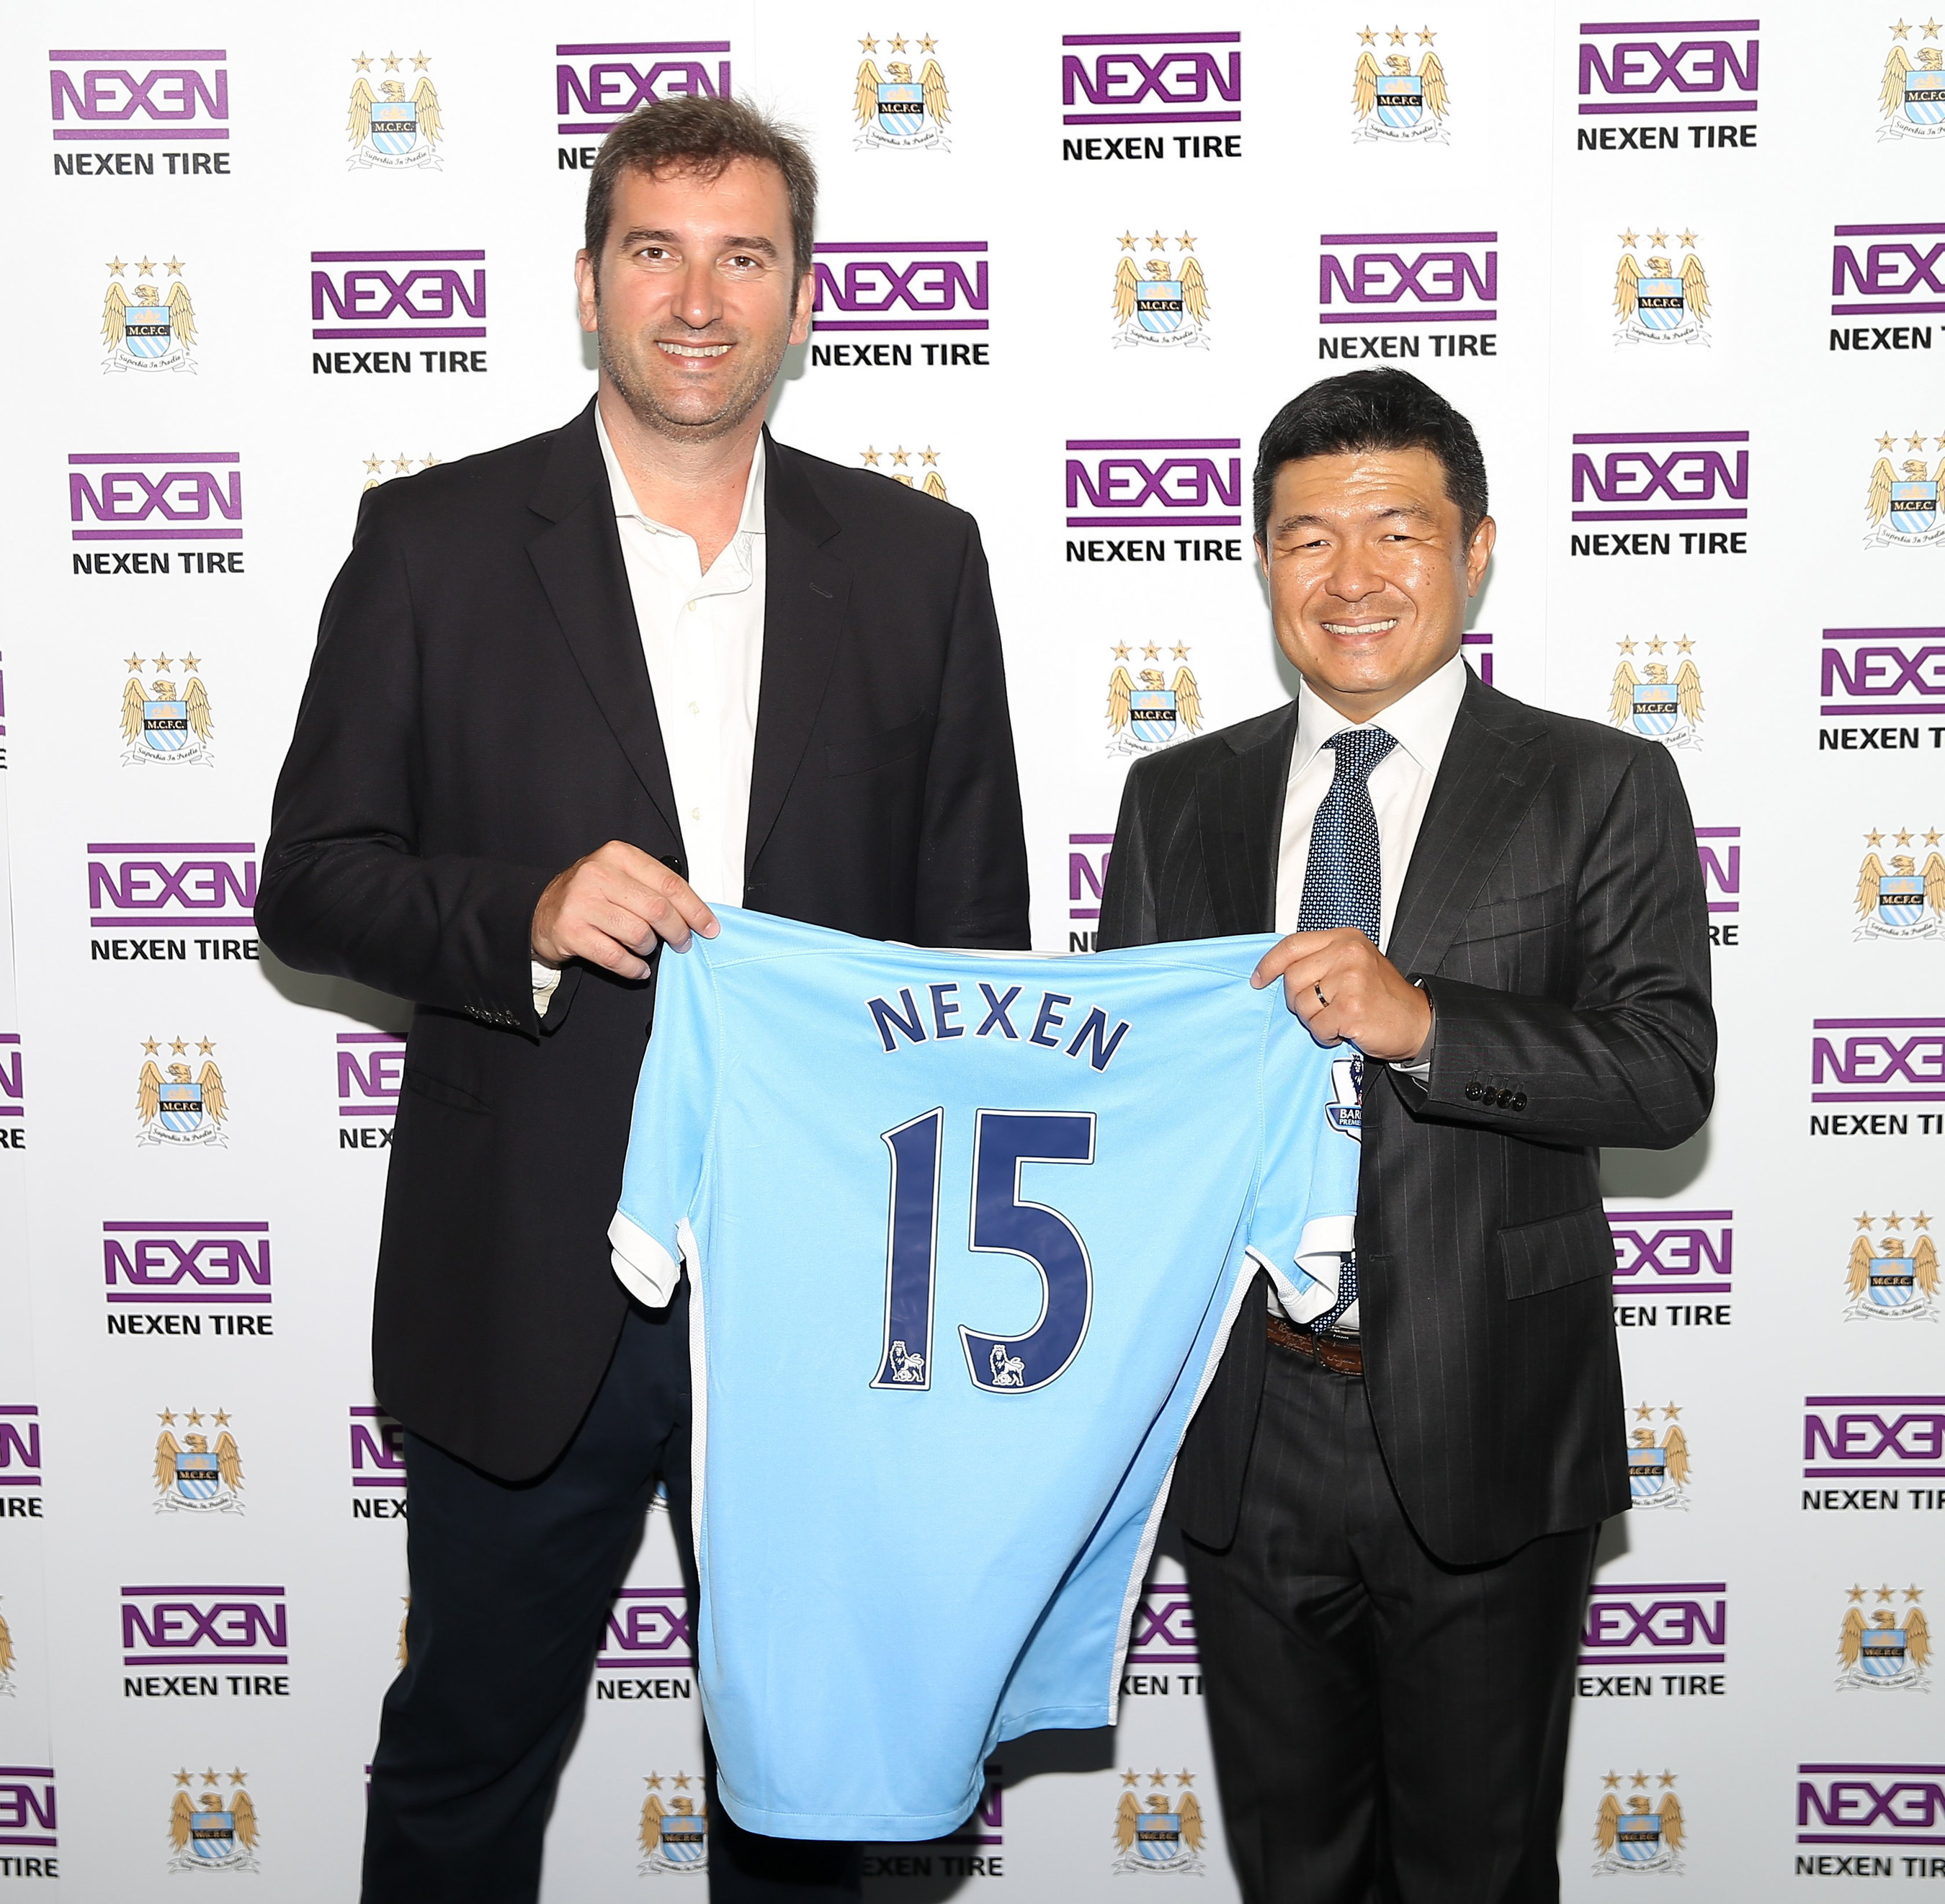 Nexen Tire assina parceria oficial para pneus com o Manchester City Football Club